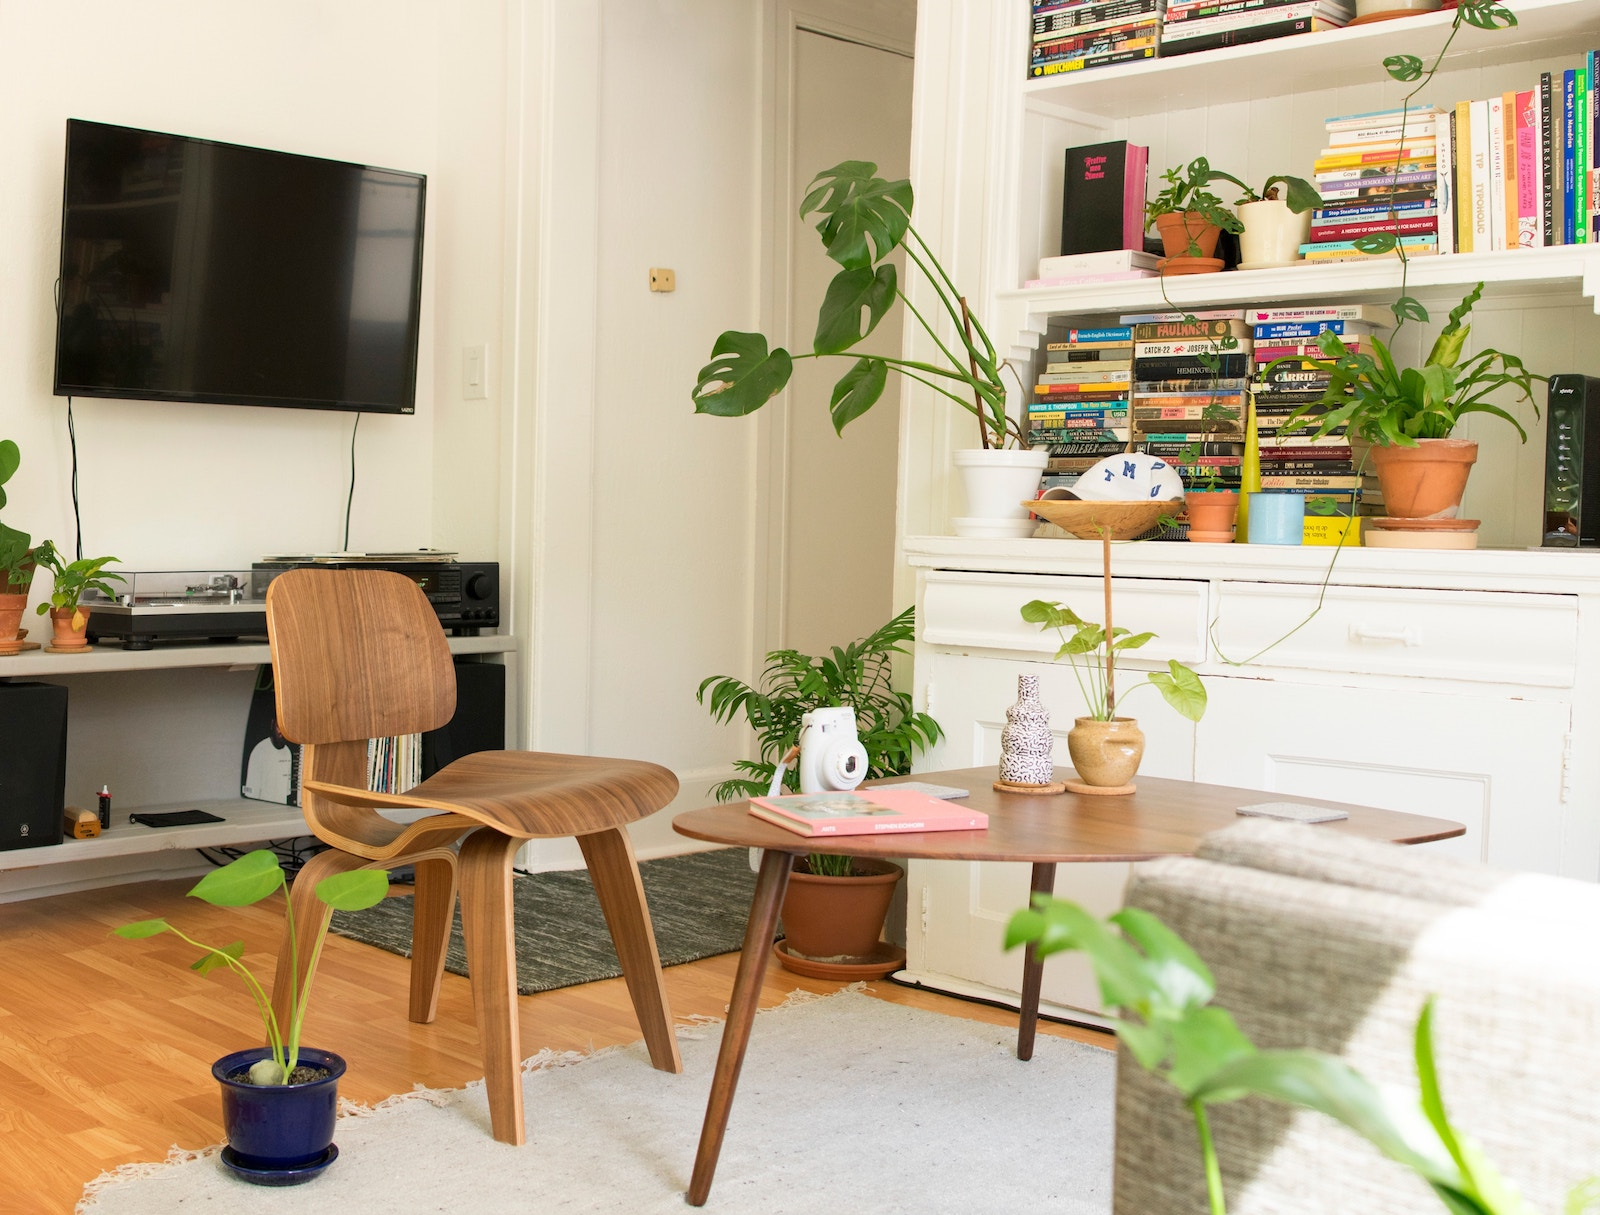 20 Brilliant NYC Apartment Decorating Tips And Ideas On A